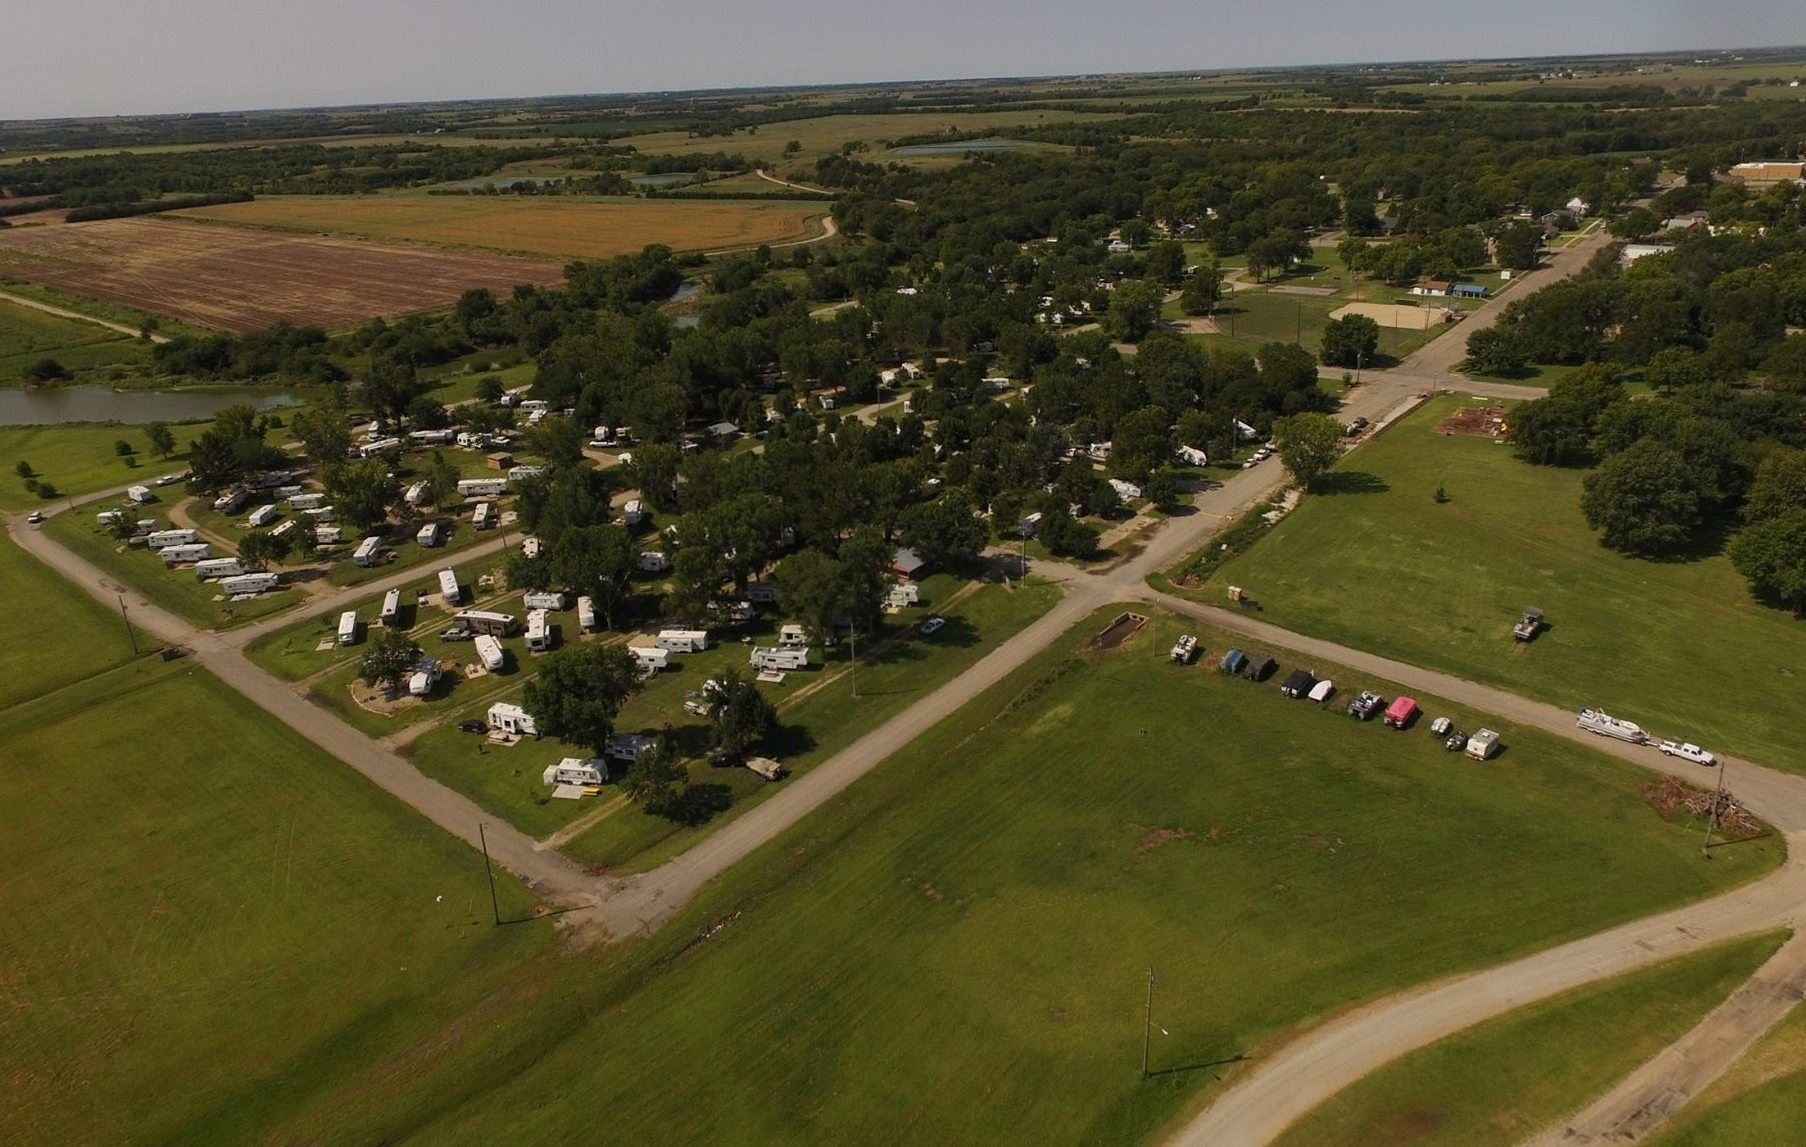 Aerial view of Clay County Park